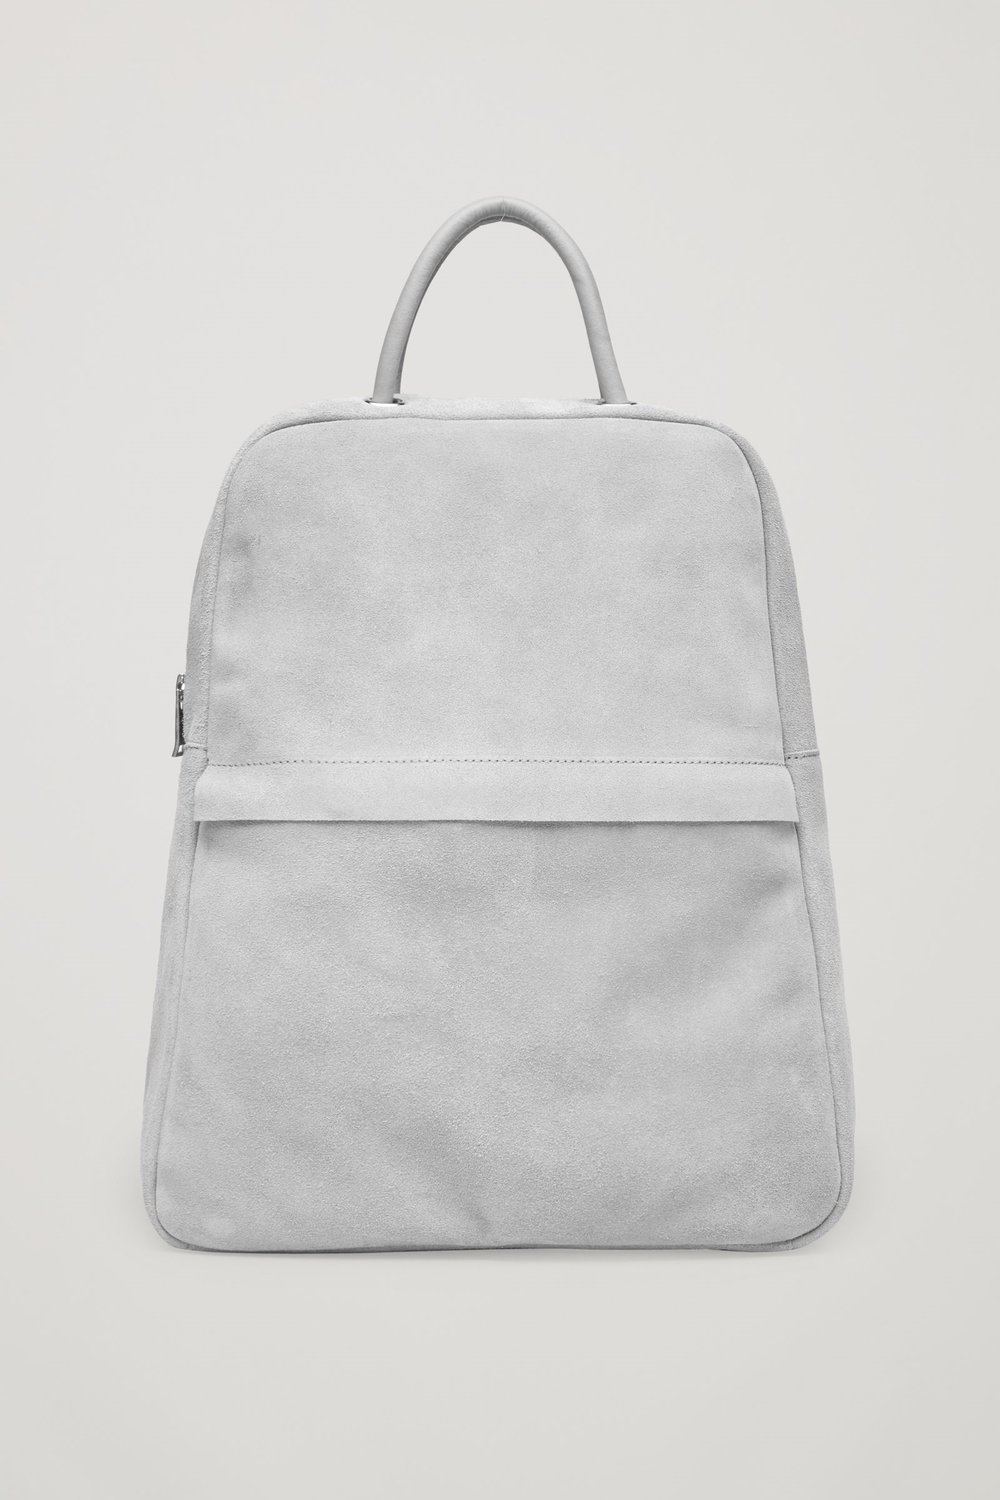 Cos Backpack £125